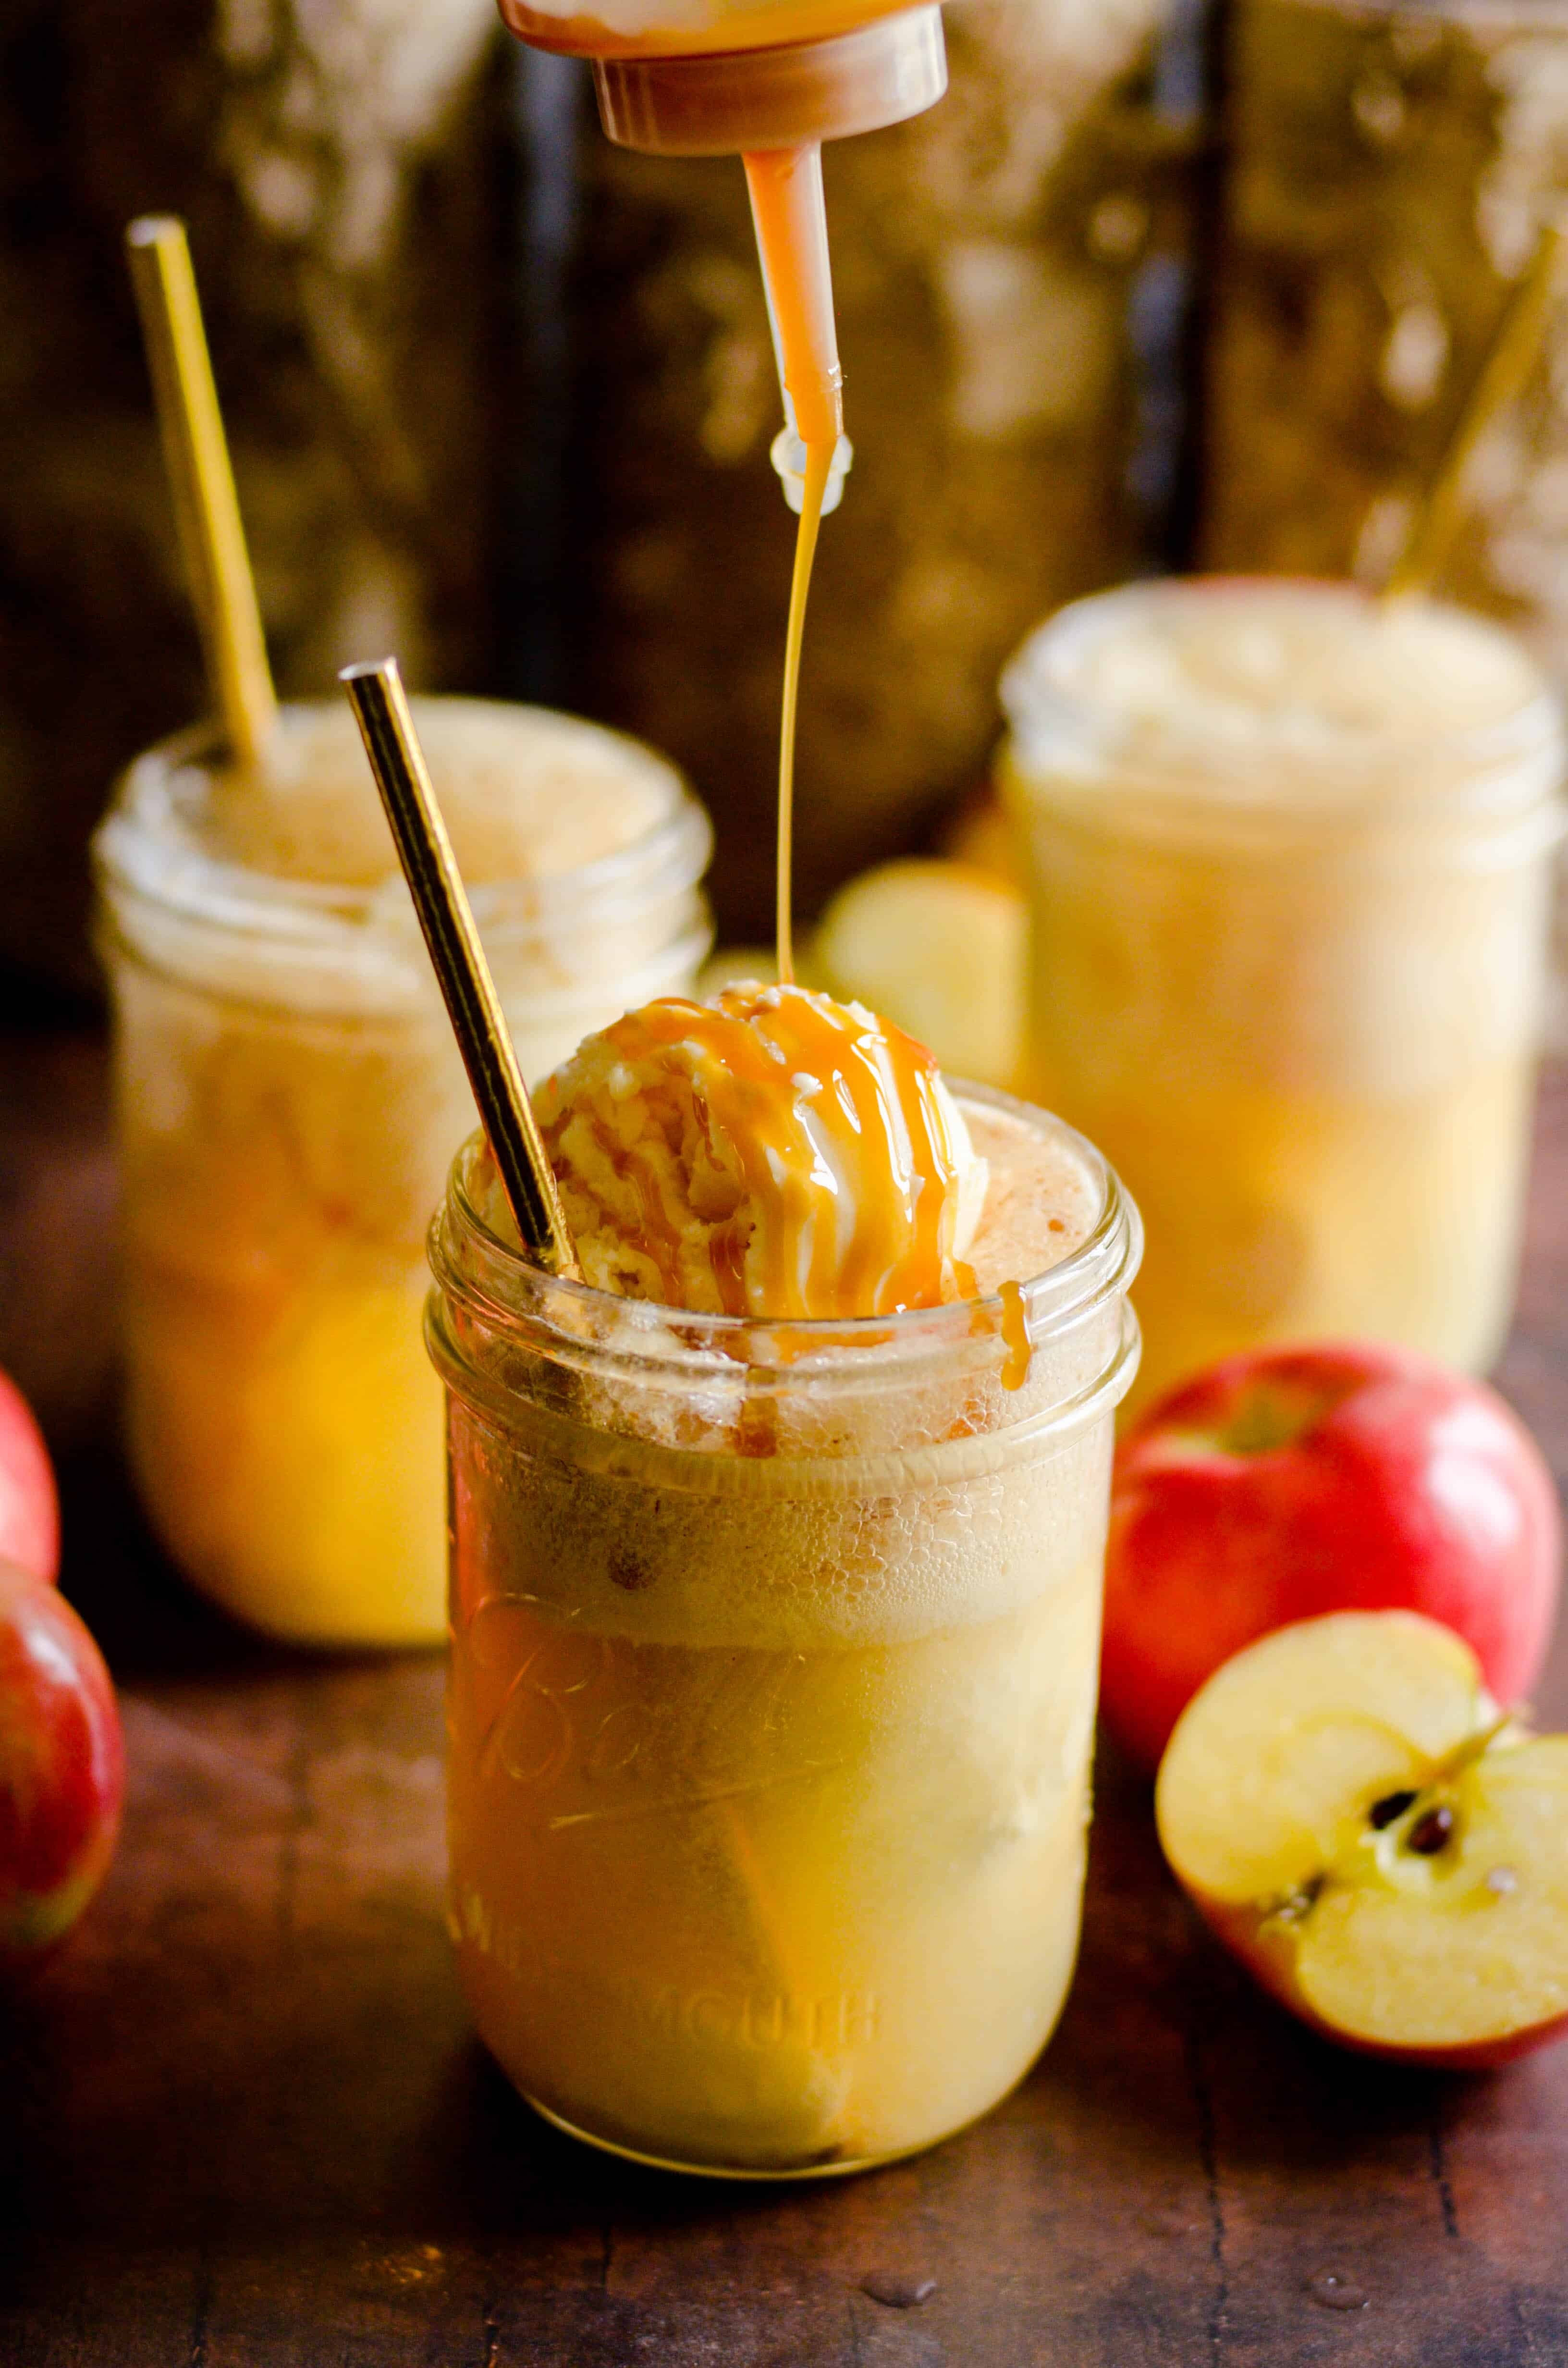 These sparkling Caramel Apple Cider Floats are the perfect treat for the transition from Summer to Fall. Easy to make for the whole family, you'll love sipping these on those not-quite-chilly-yet Fall days!